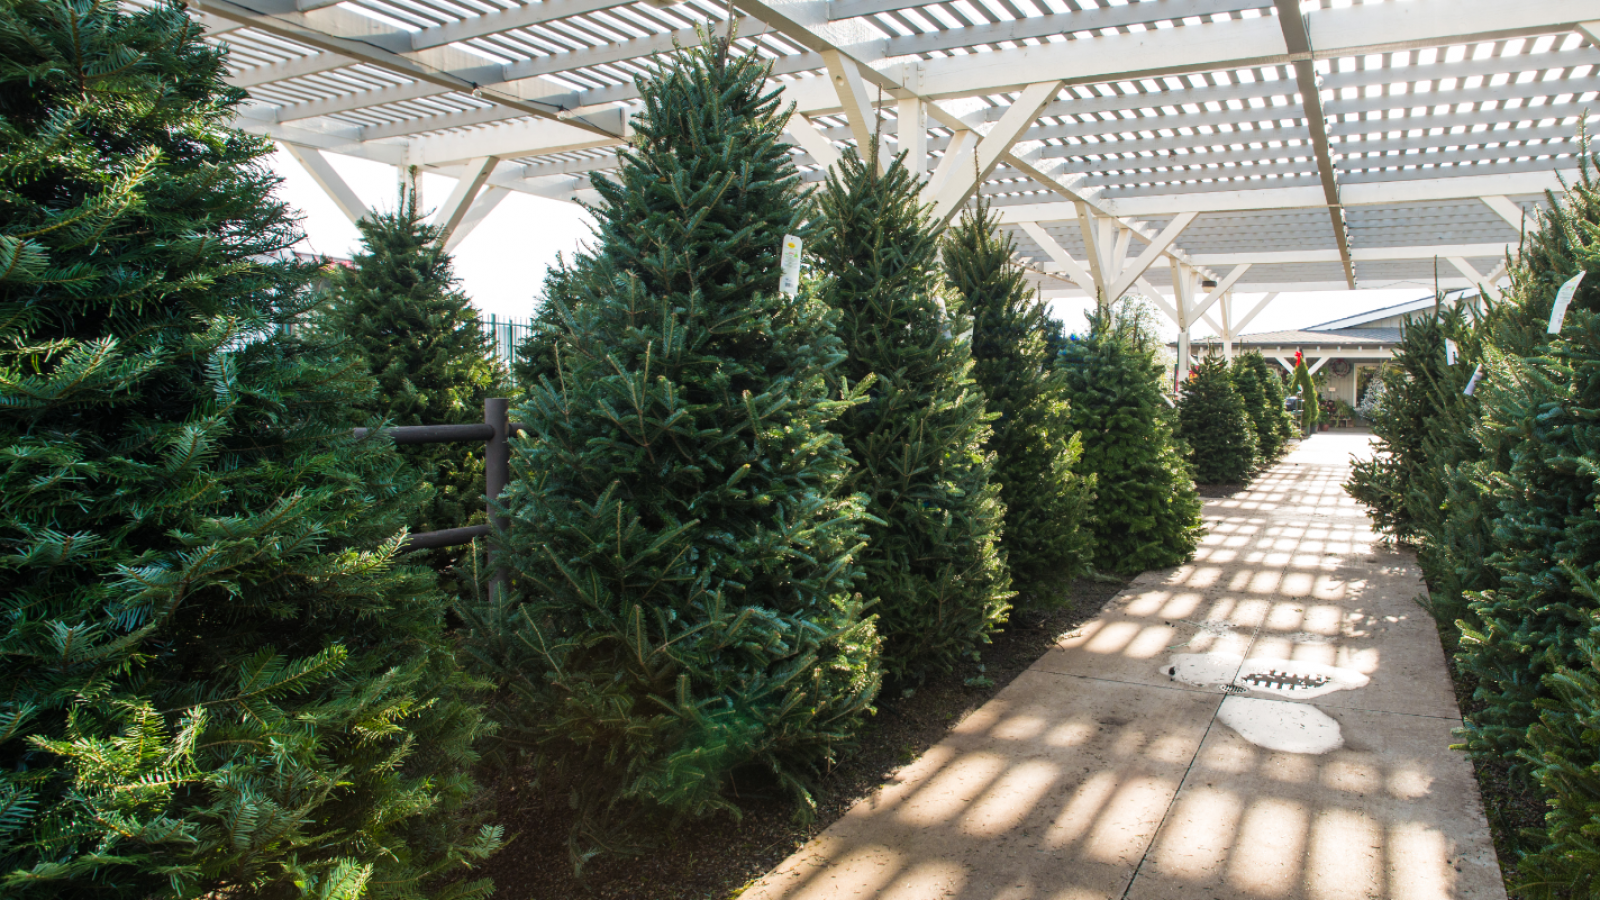 Christmas trees in the garden center